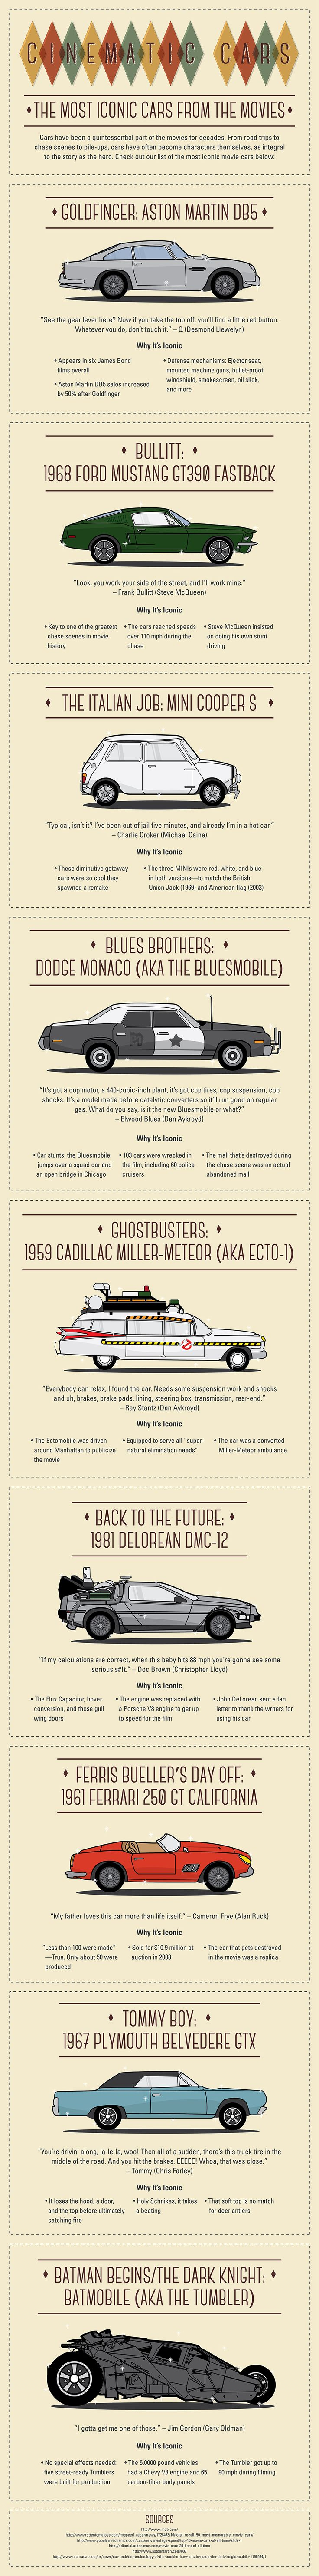 Little red wagon funny car pictures car canyon - The Most Iconic Cars From Movies